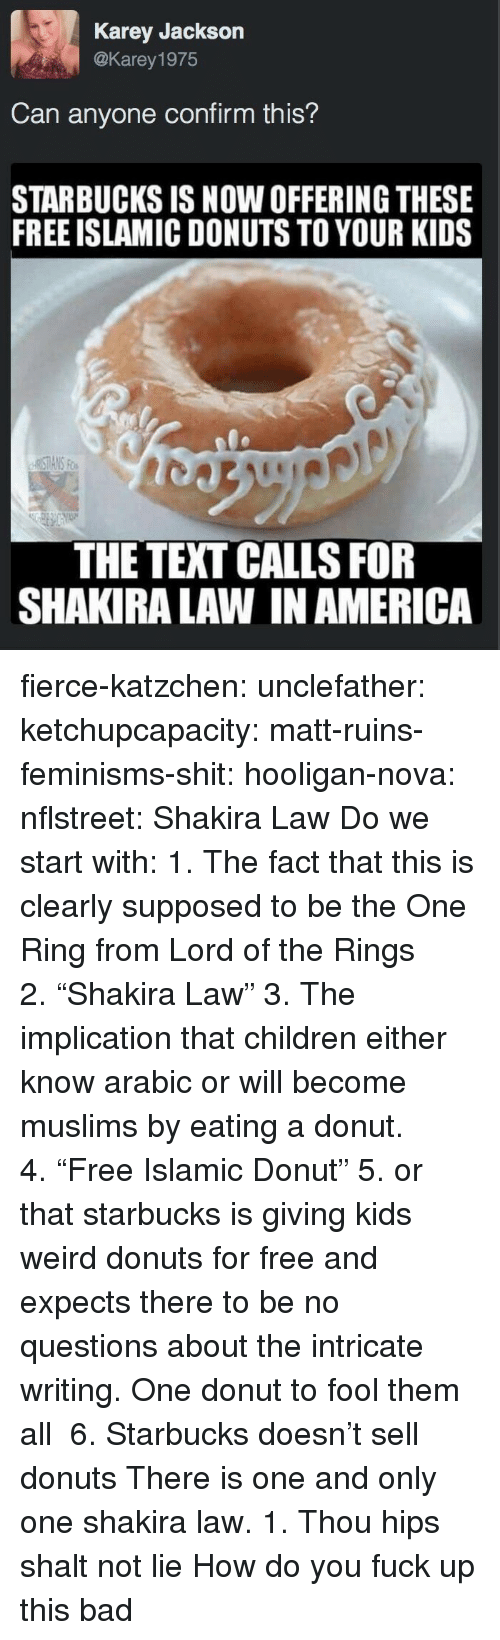 "America, Bad, and Children: Karey Jackson  @Karey 1975  Can anyone confirm this?  STARBUCKS IS NOW OFFERING THESE  FREE ISLAMIC DONUTS TO YOUR KIDS  THE TEXT CALLS FOR  SHAKIRA LAW IN AMERICA fierce-katzchen:  unclefather:  ketchupcapacity:  matt-ruins-feminisms-shit:  hooligan-nova:  nflstreet: Shakira Law Do we start with: 1. The fact that this is clearly supposed to be the One Ring from Lord of the Rings 2. ""Shakira Law"" 3. The implication that children either know arabic or will become muslims by eating a donut. 4. ""Free Islamic Donut"" 5. or that starbucks is giving kids weird donuts for free and expects there to be no questions about the intricate writing.  One donut to fool them all    6. Starbucks doesn't sell donuts   There is one and only one shakira law. 1. Thou hips shalt not lie   How do you fuck up this bad"